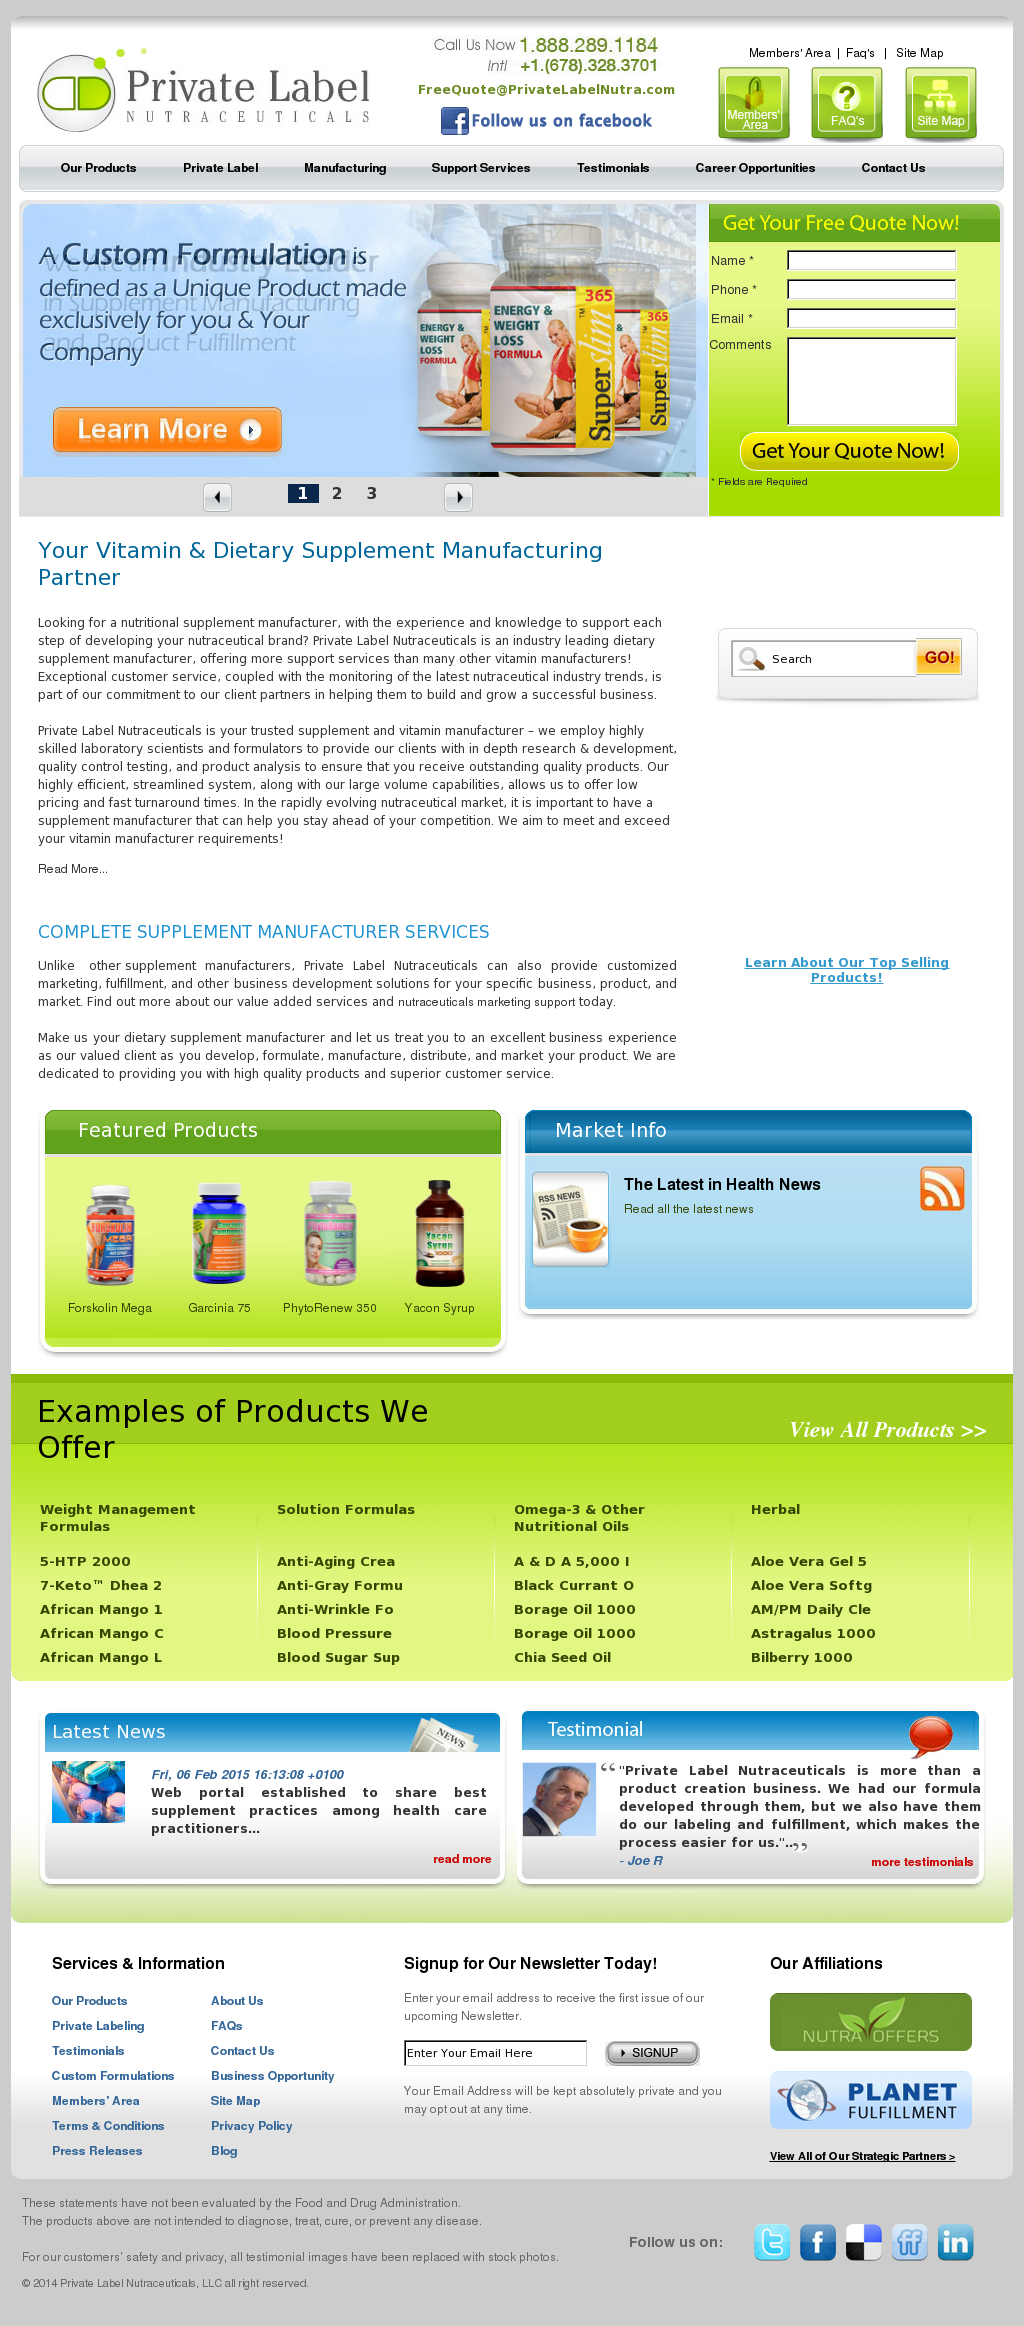 Private Label Nutraceuticals Competitors, Revenue and Employees